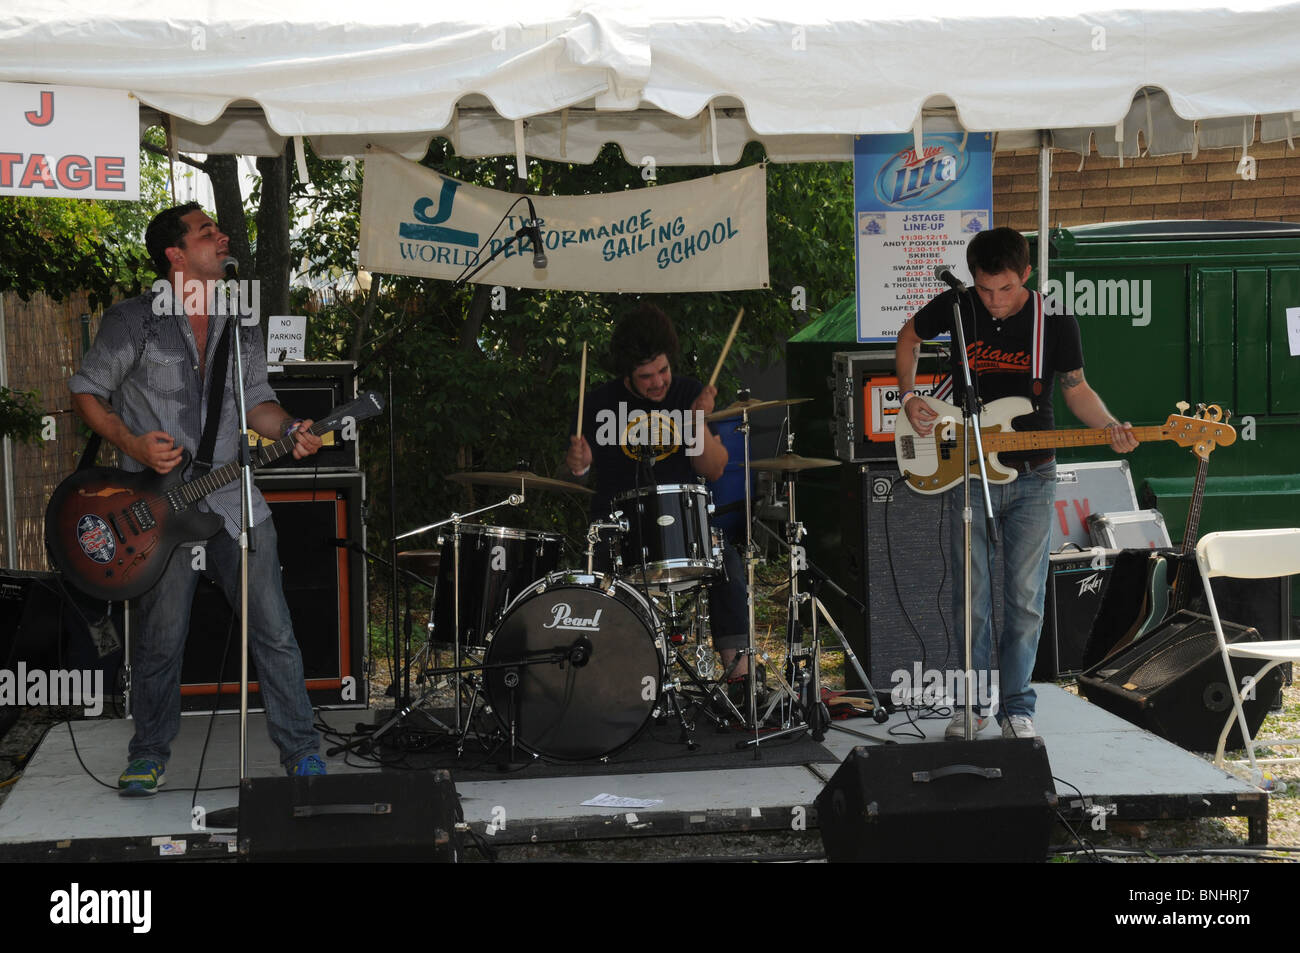 lrizn Severn and Those Victorius rock band plays at the Eastport festival in Annapolis, Md - Stock Image